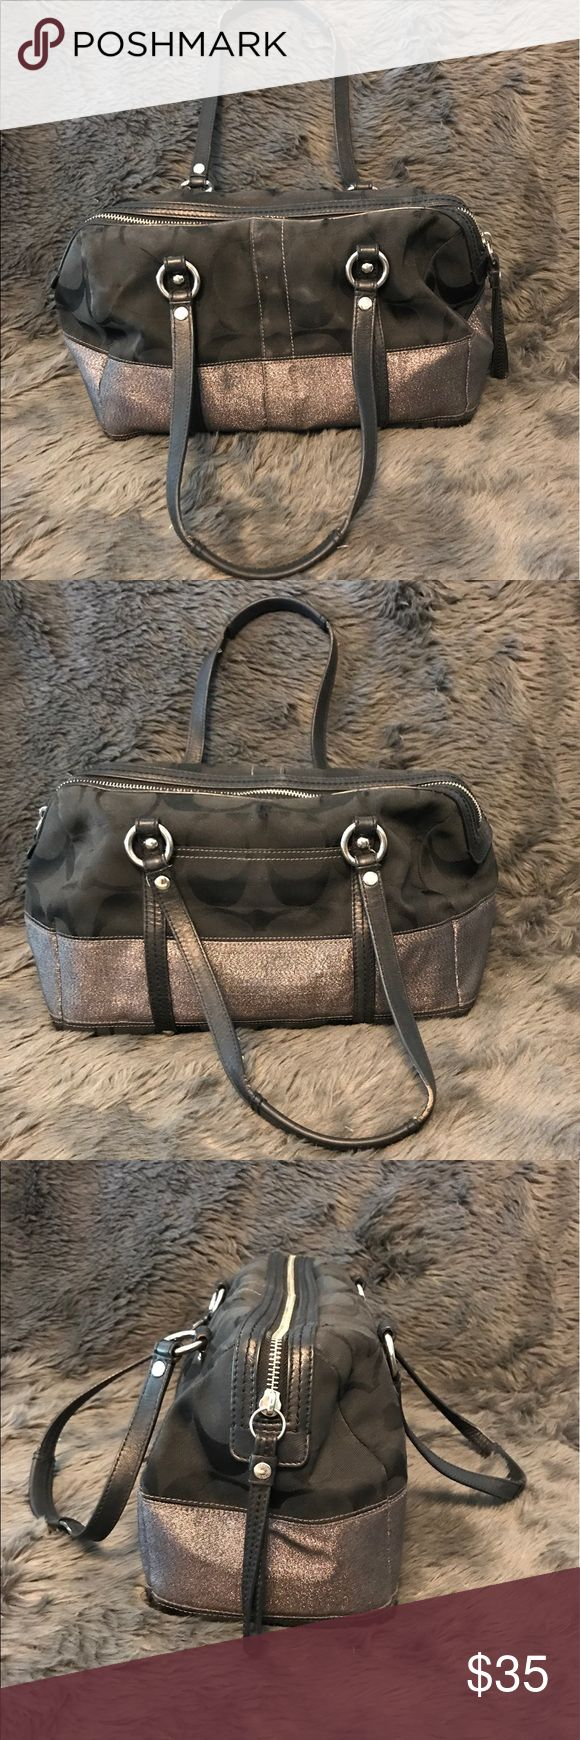 "Coach Satchel Timeless Coach Satchel, Black Logo Nylon with Silver Metallic Leather Stripe and Silver Tone Accents. Pre-loved with some peeling on handle, not noticeable when being carried.  Approximate size 13""L x 5.5""W x 8""H with a 9"" strap drop. Coach Bags Satchels"